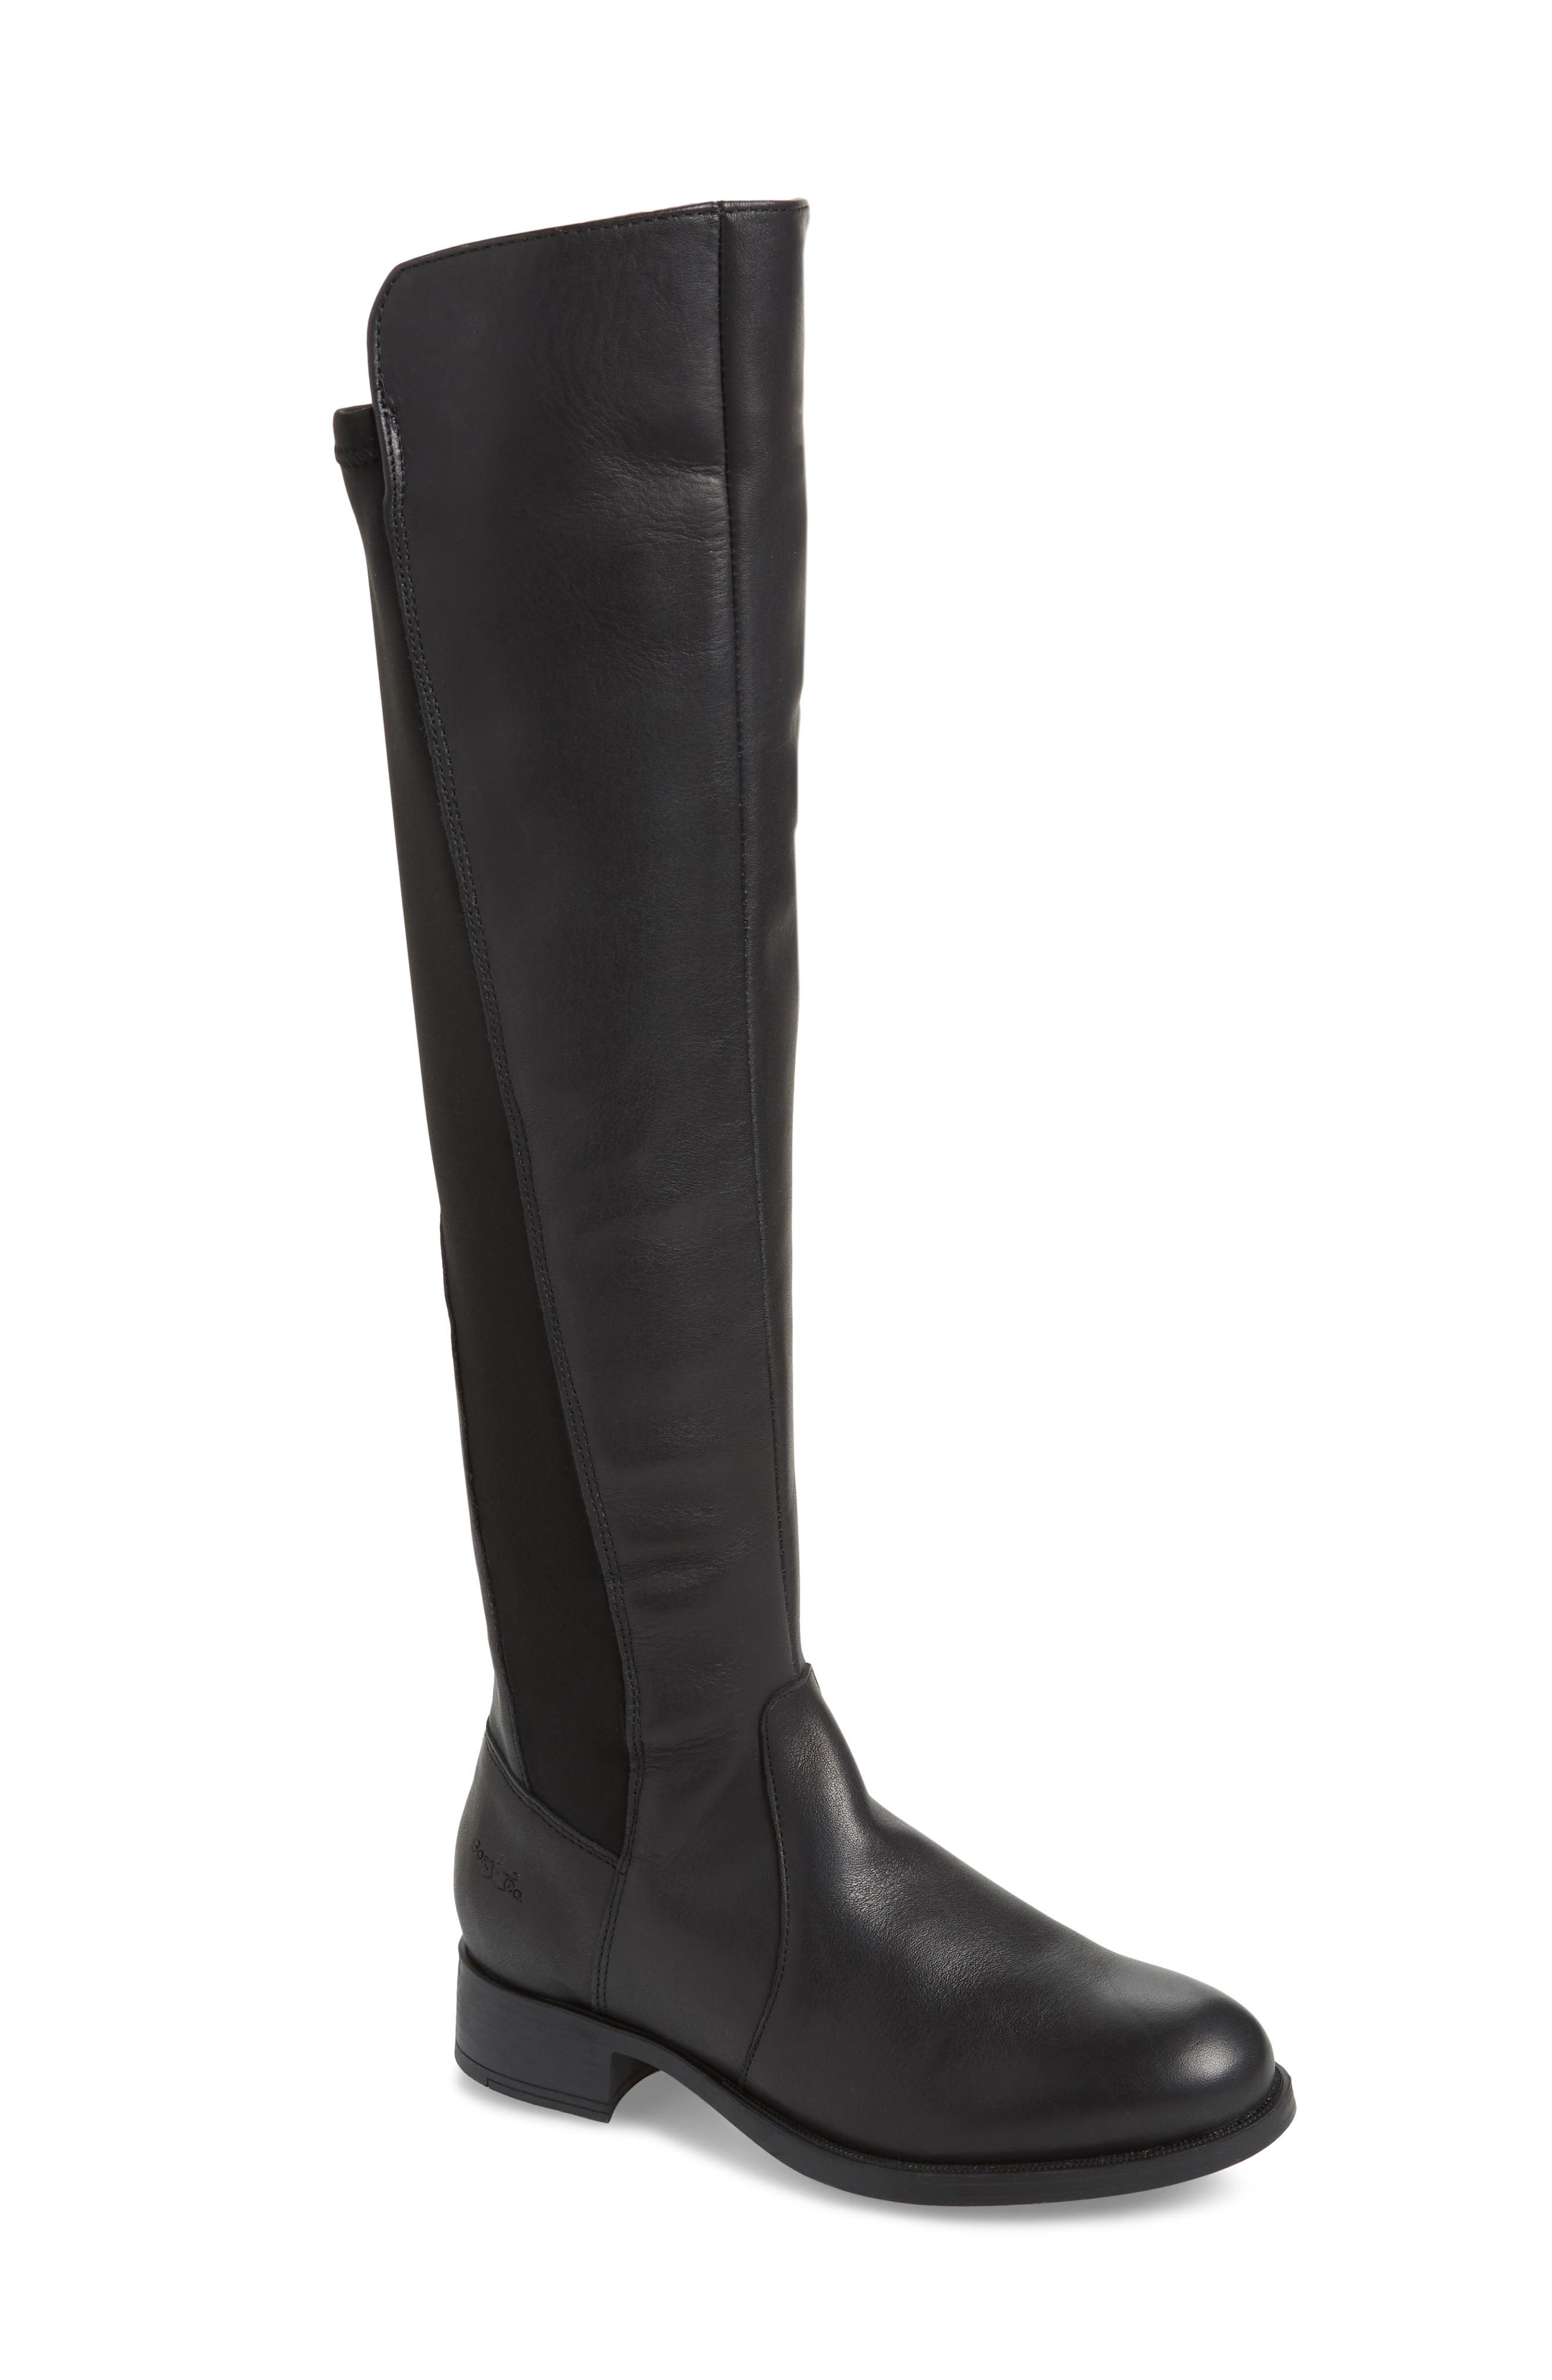 BOS. & CO. Bunt Waterproof Over the Knee Boot, Main, color, BLACK MELBOURNE/ LYCRA